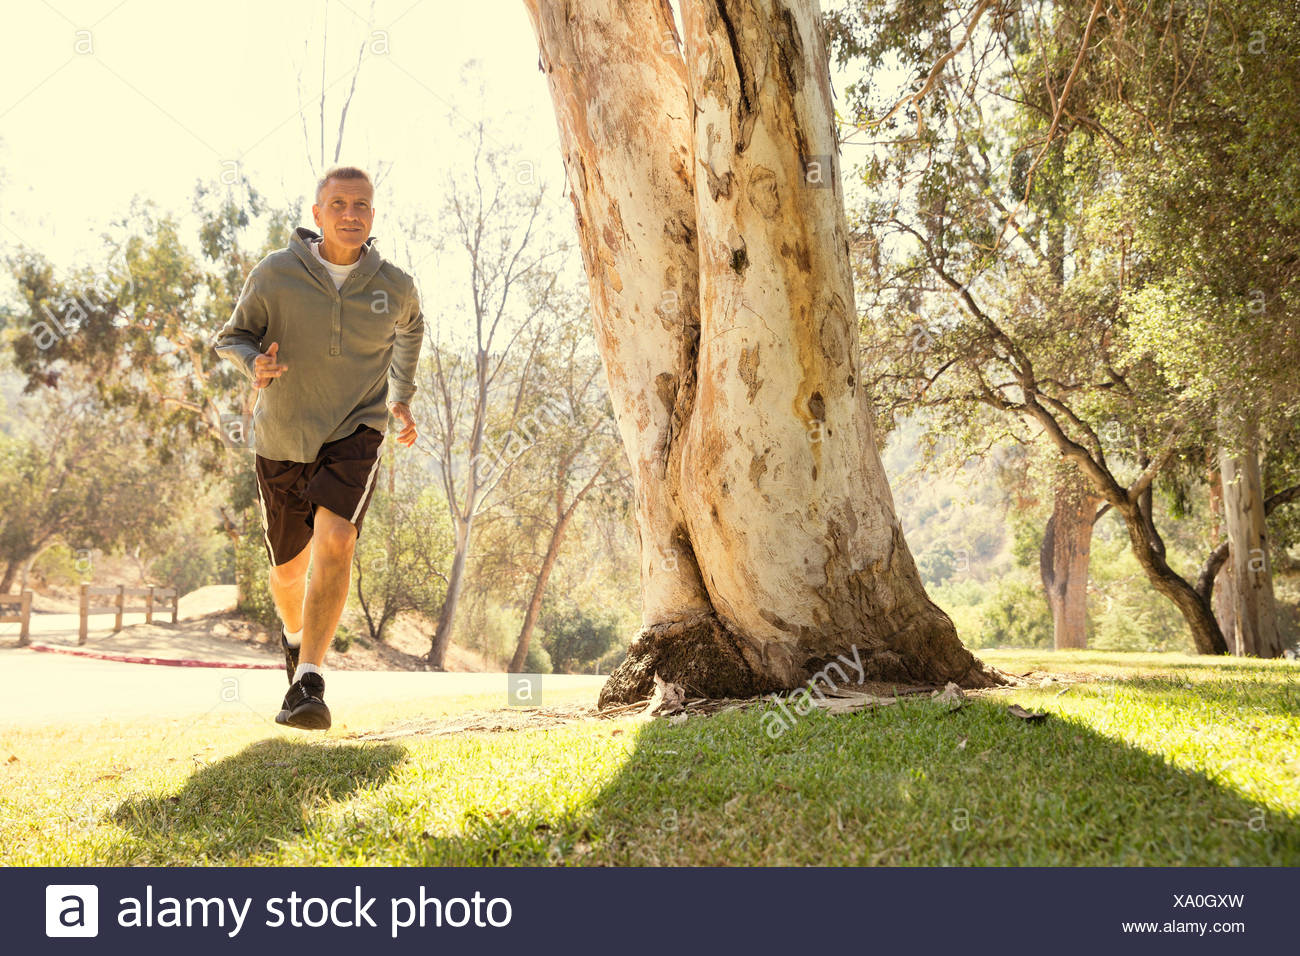 Mature man running through park - Stock Image